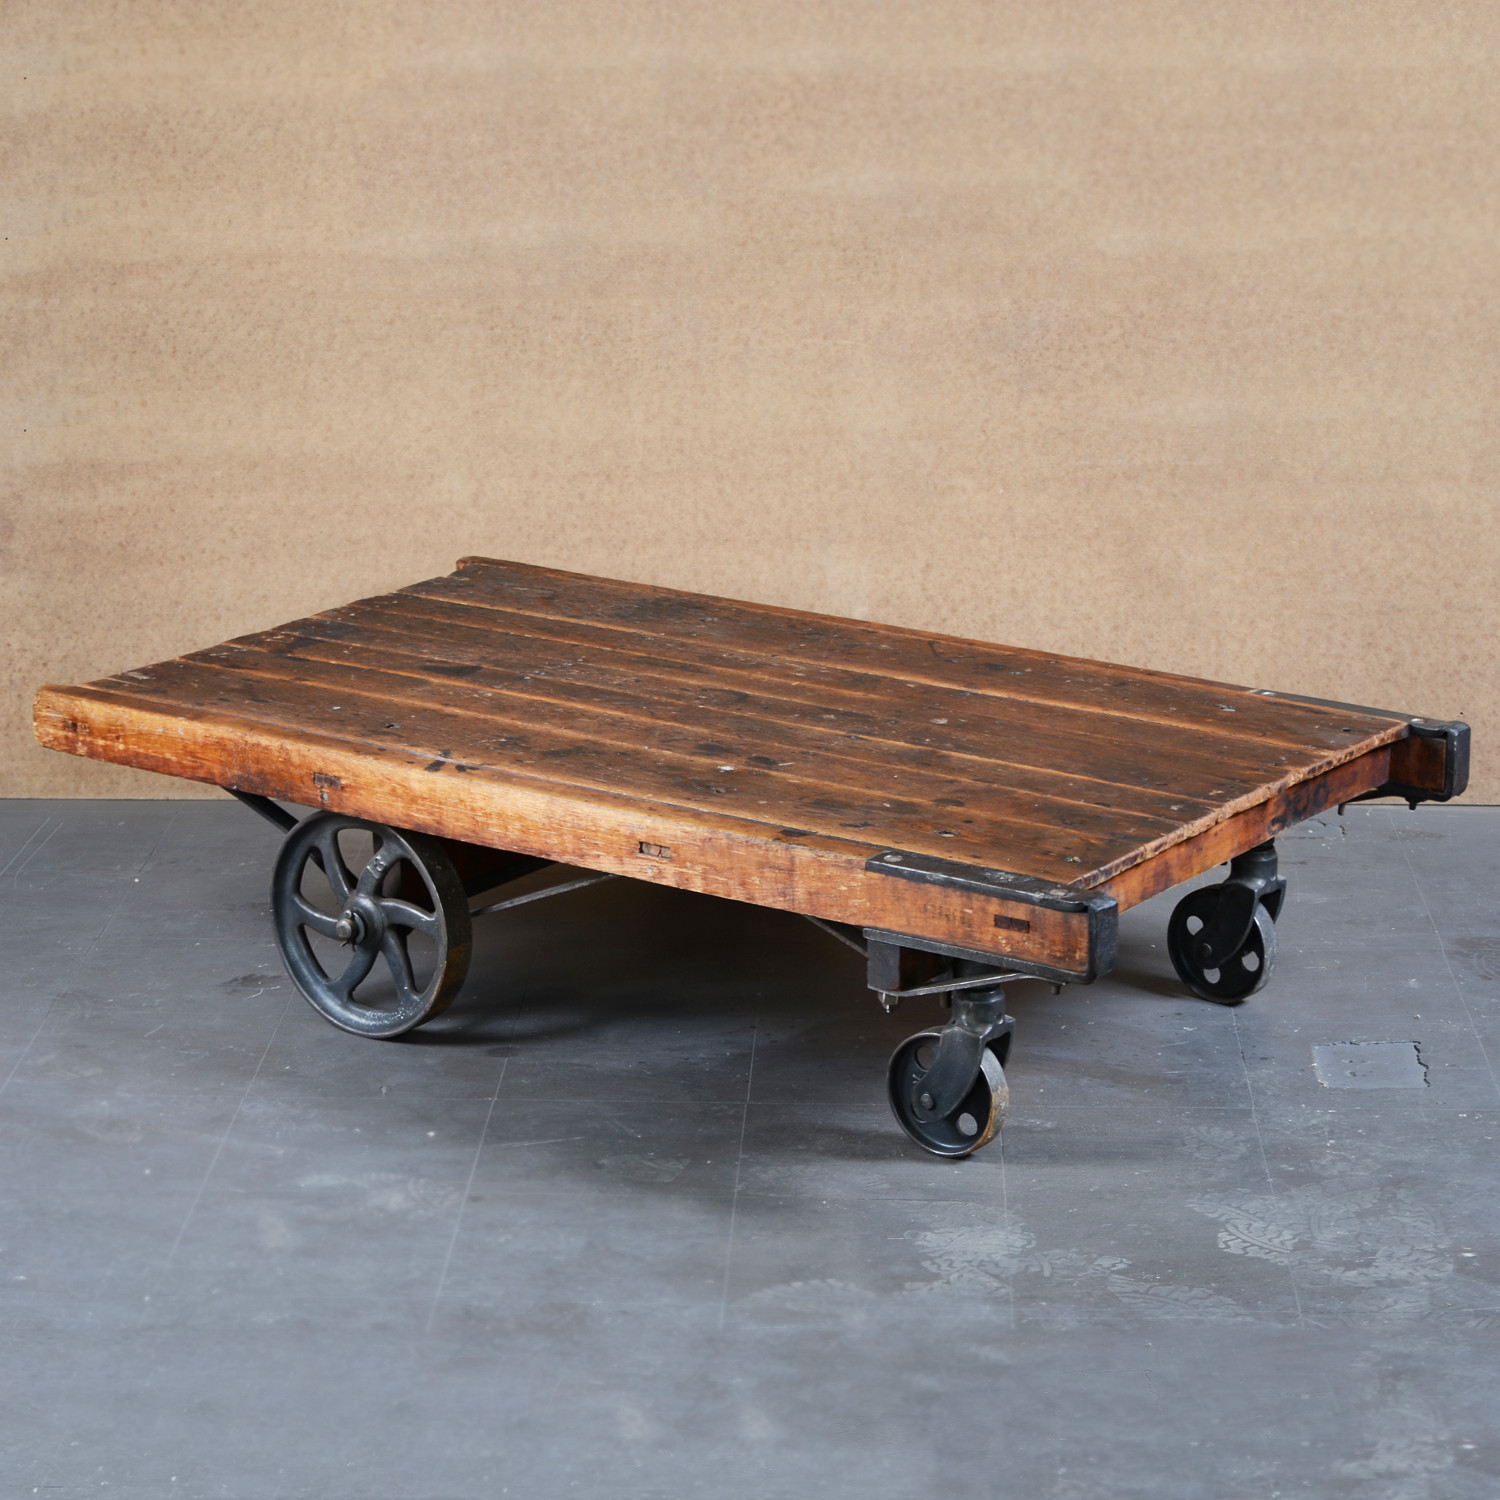 Vintage Factory Cart by Jacob Wener